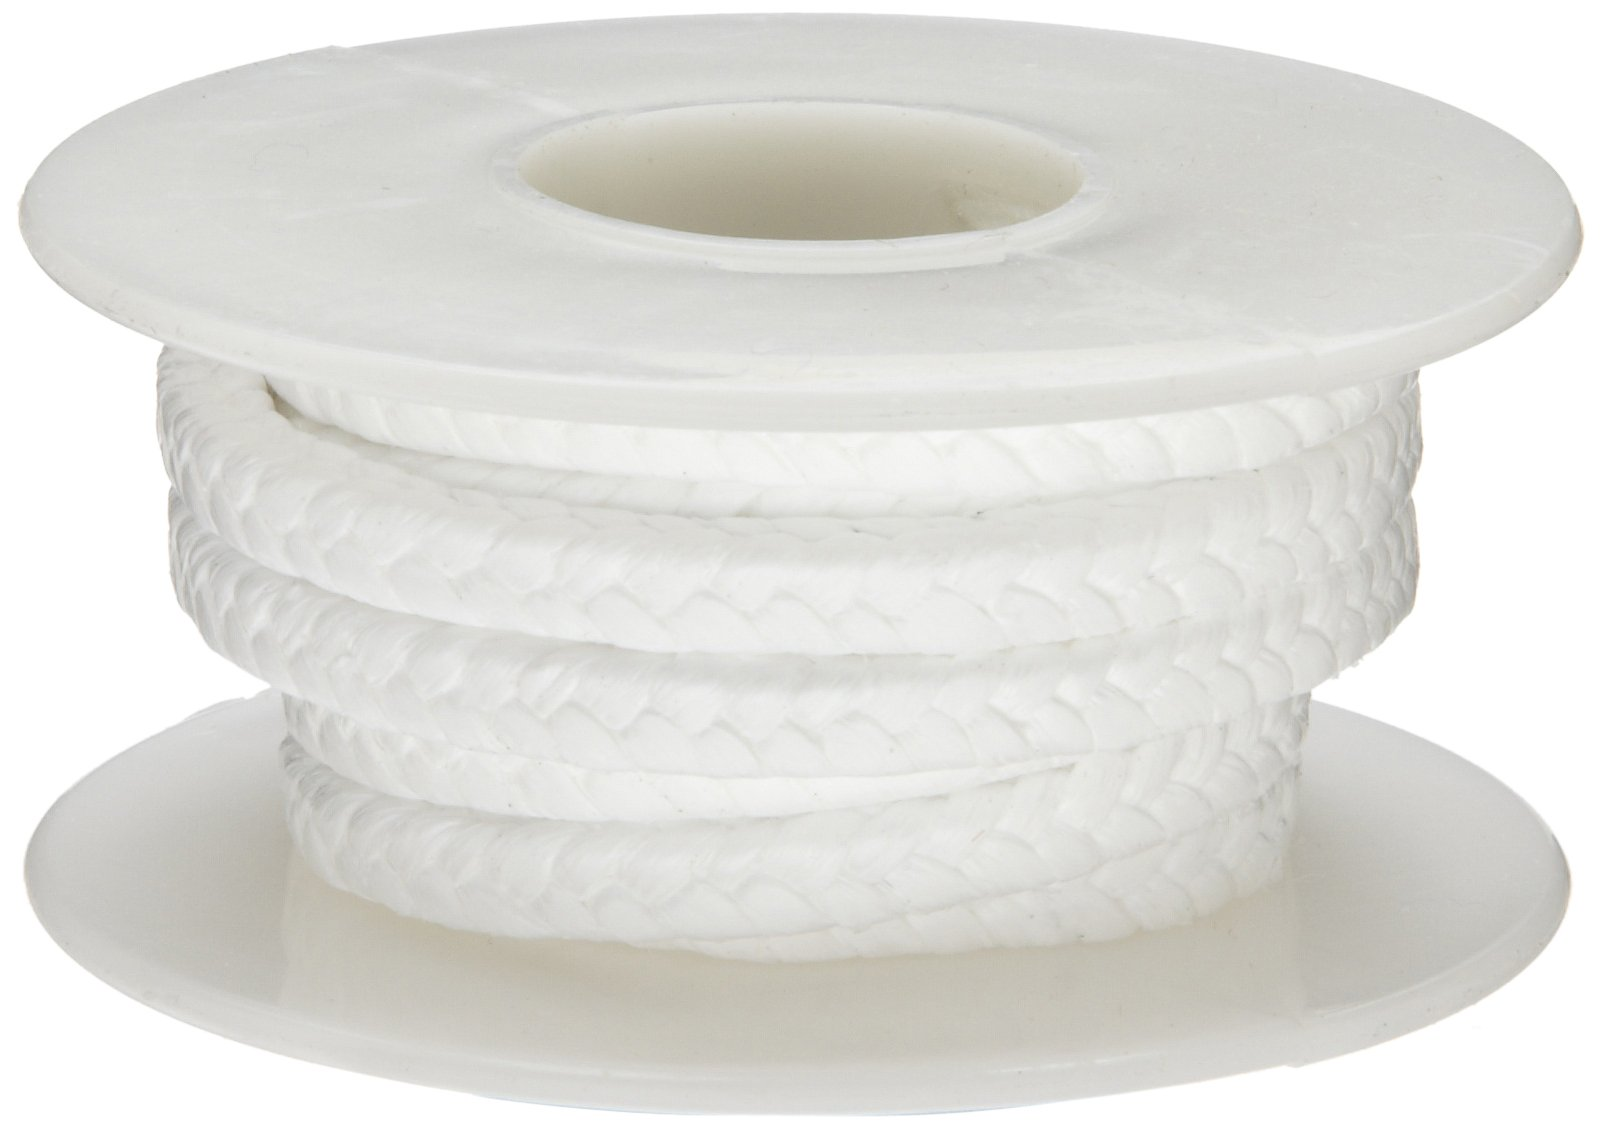 Palmetto 1367H Series PTFE without Lubrication Compression Packing Seal, White, 1/4'' Square, 5' Length by Palmetto Packings